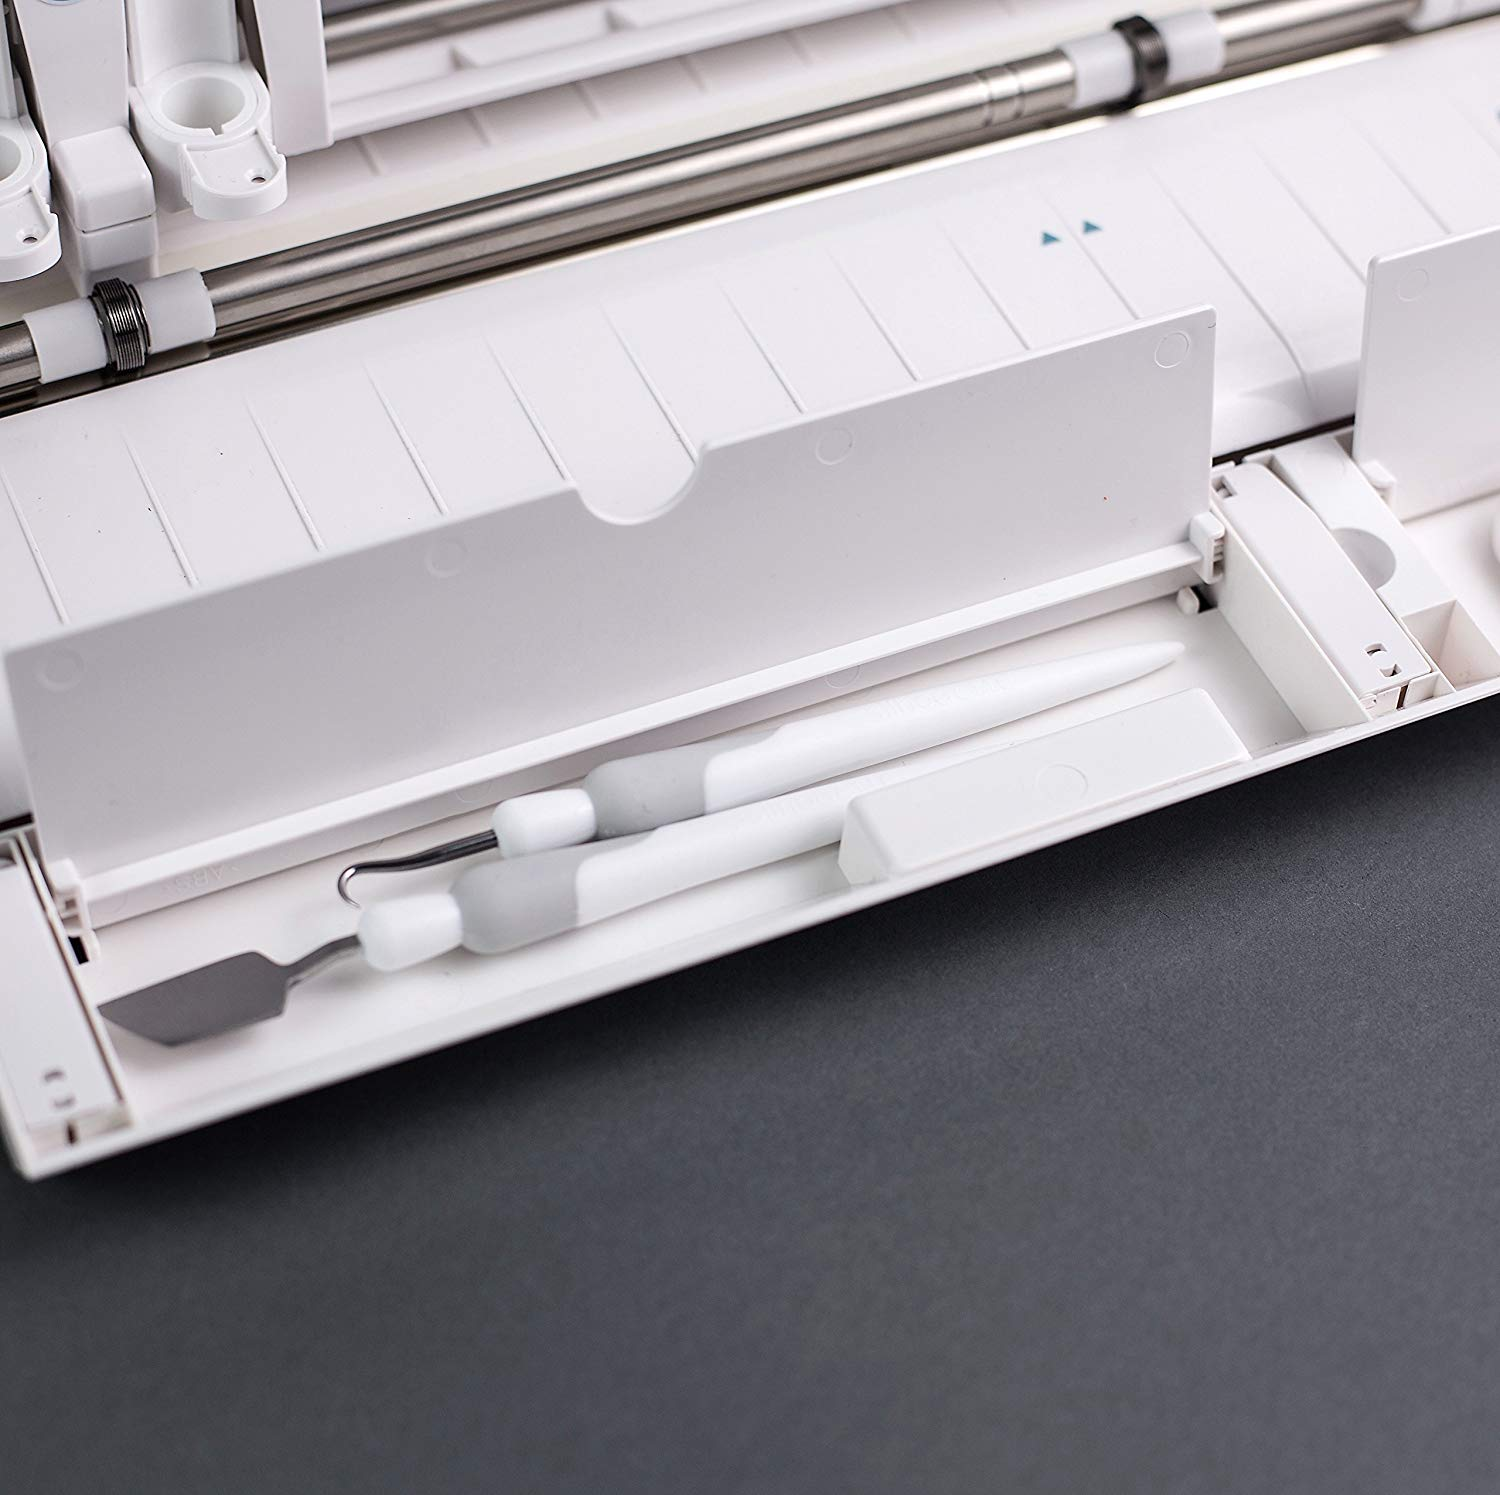 Silhouette Cameo 3 has two hidden compartments. A long one for pens and tools and a short one for pen blades.